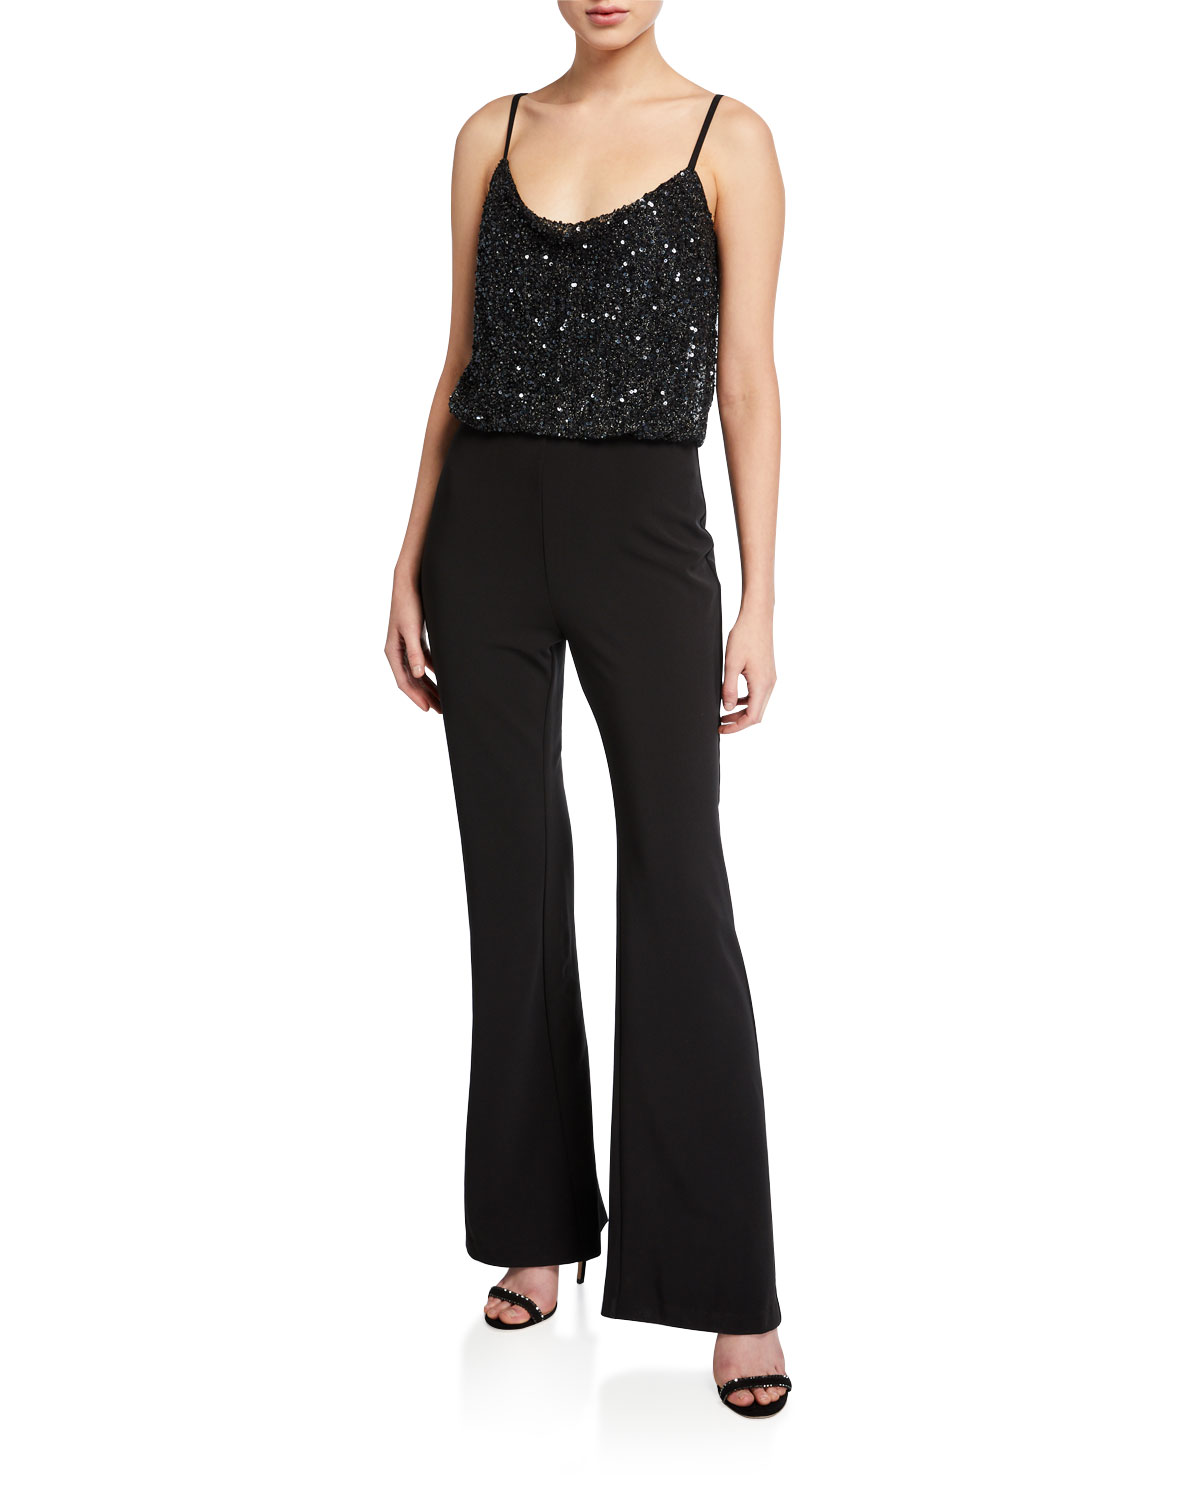 Parker Black Perth Beaded-Bodice Sleeveless Stretch Crepe Flare-Leg Jumpsuit